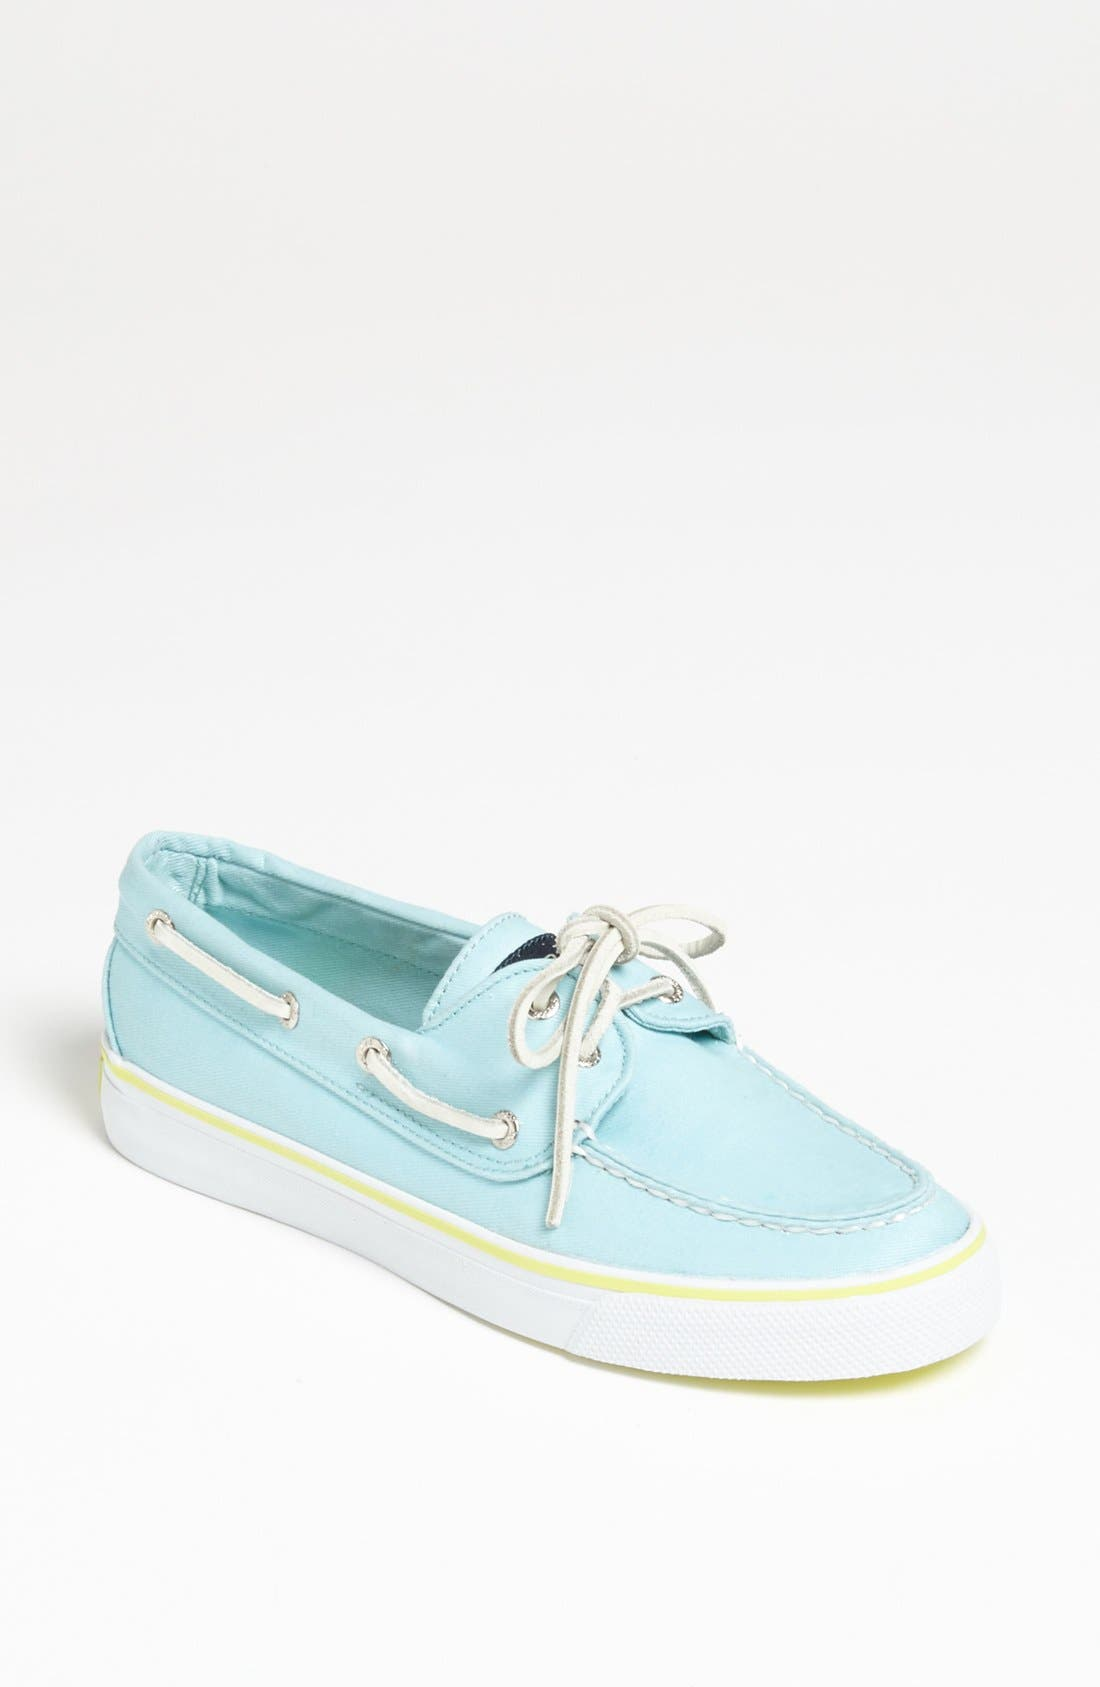 Top-Sider<sup>®</sup> 'Bahama' Sequined Boat Shoe,                             Main thumbnail 21, color,